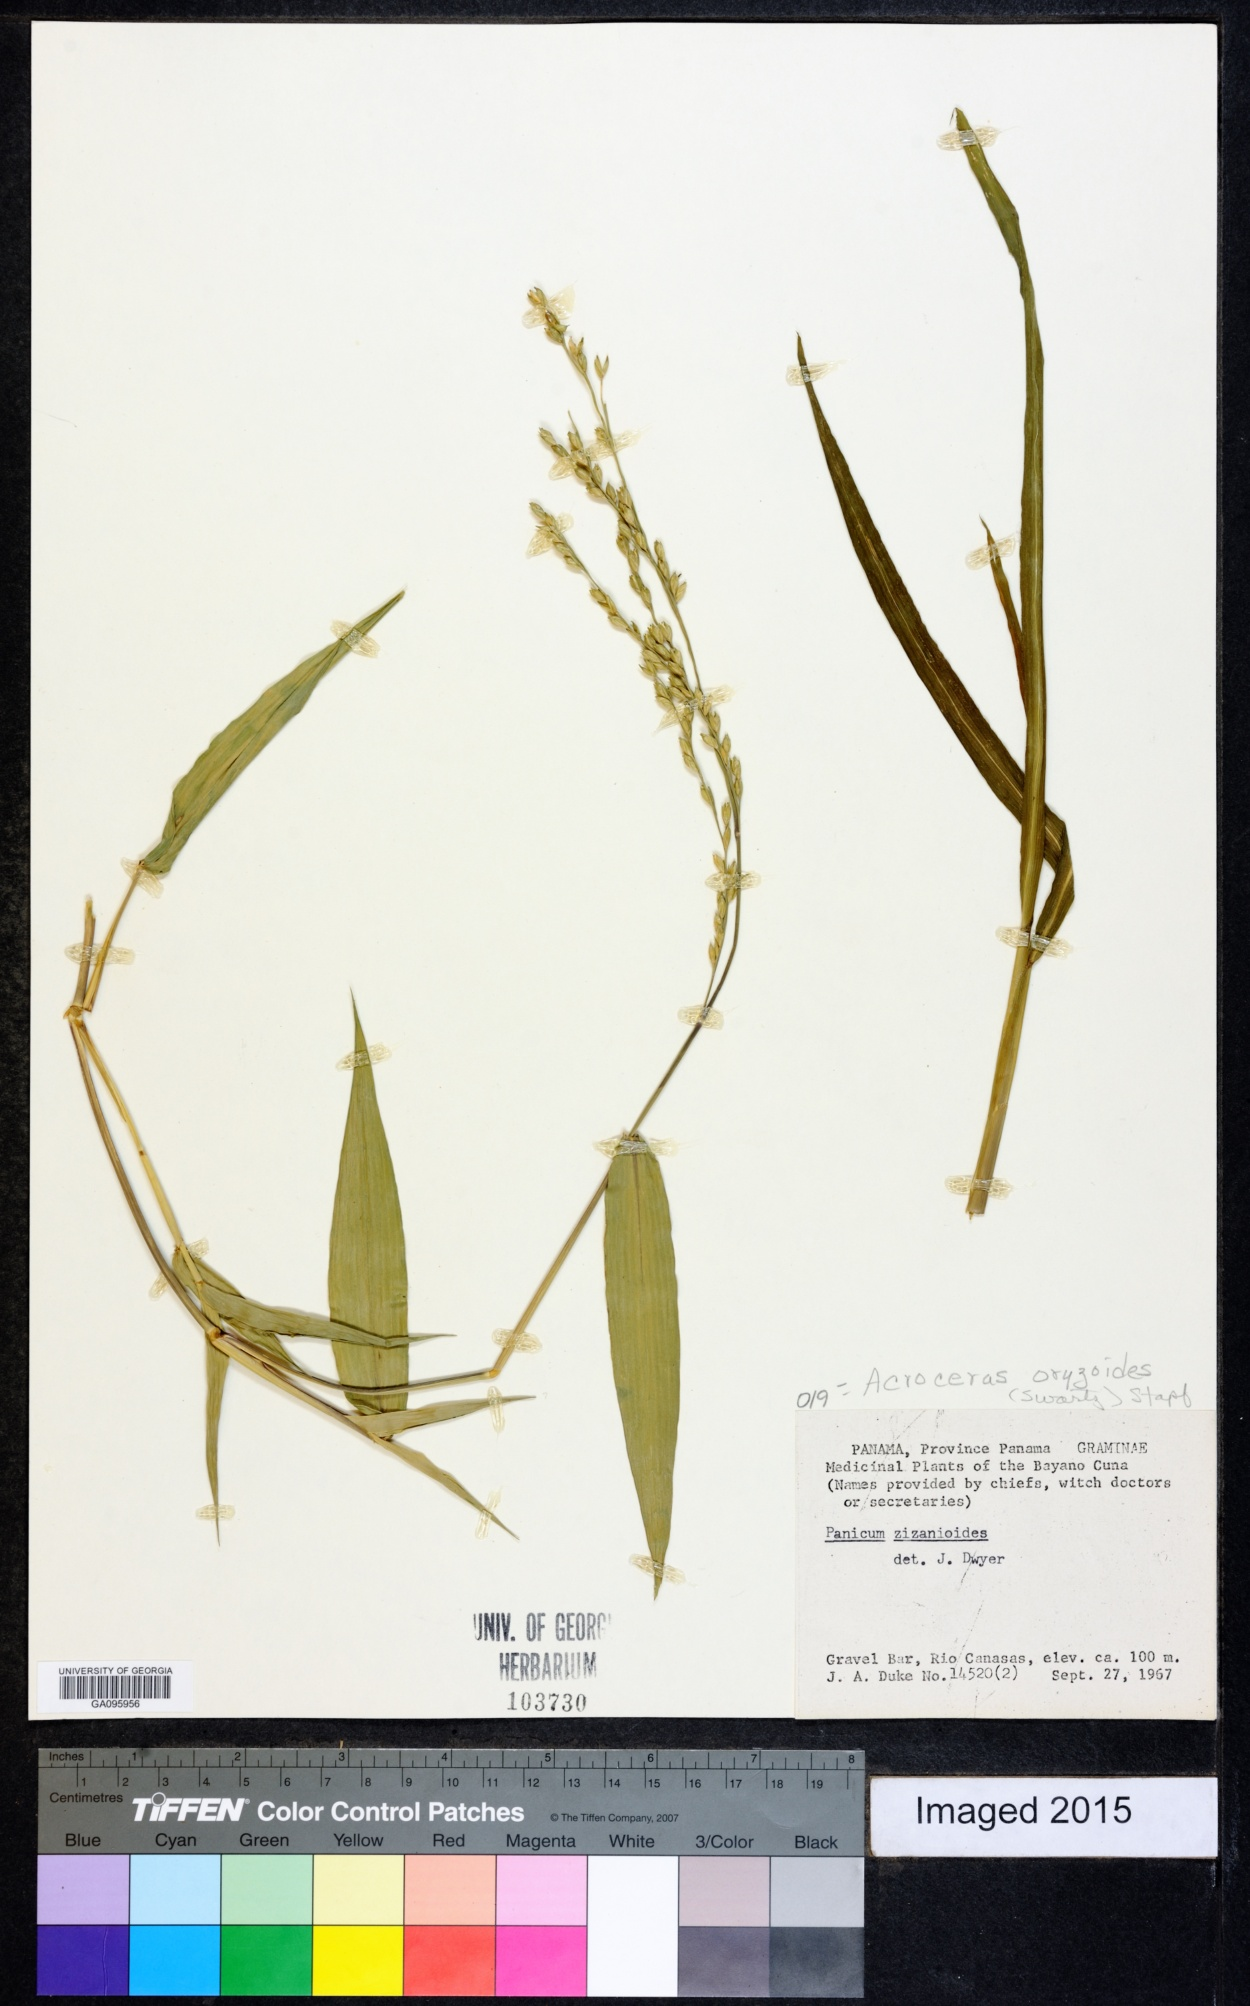 Acroceras oryzoides image